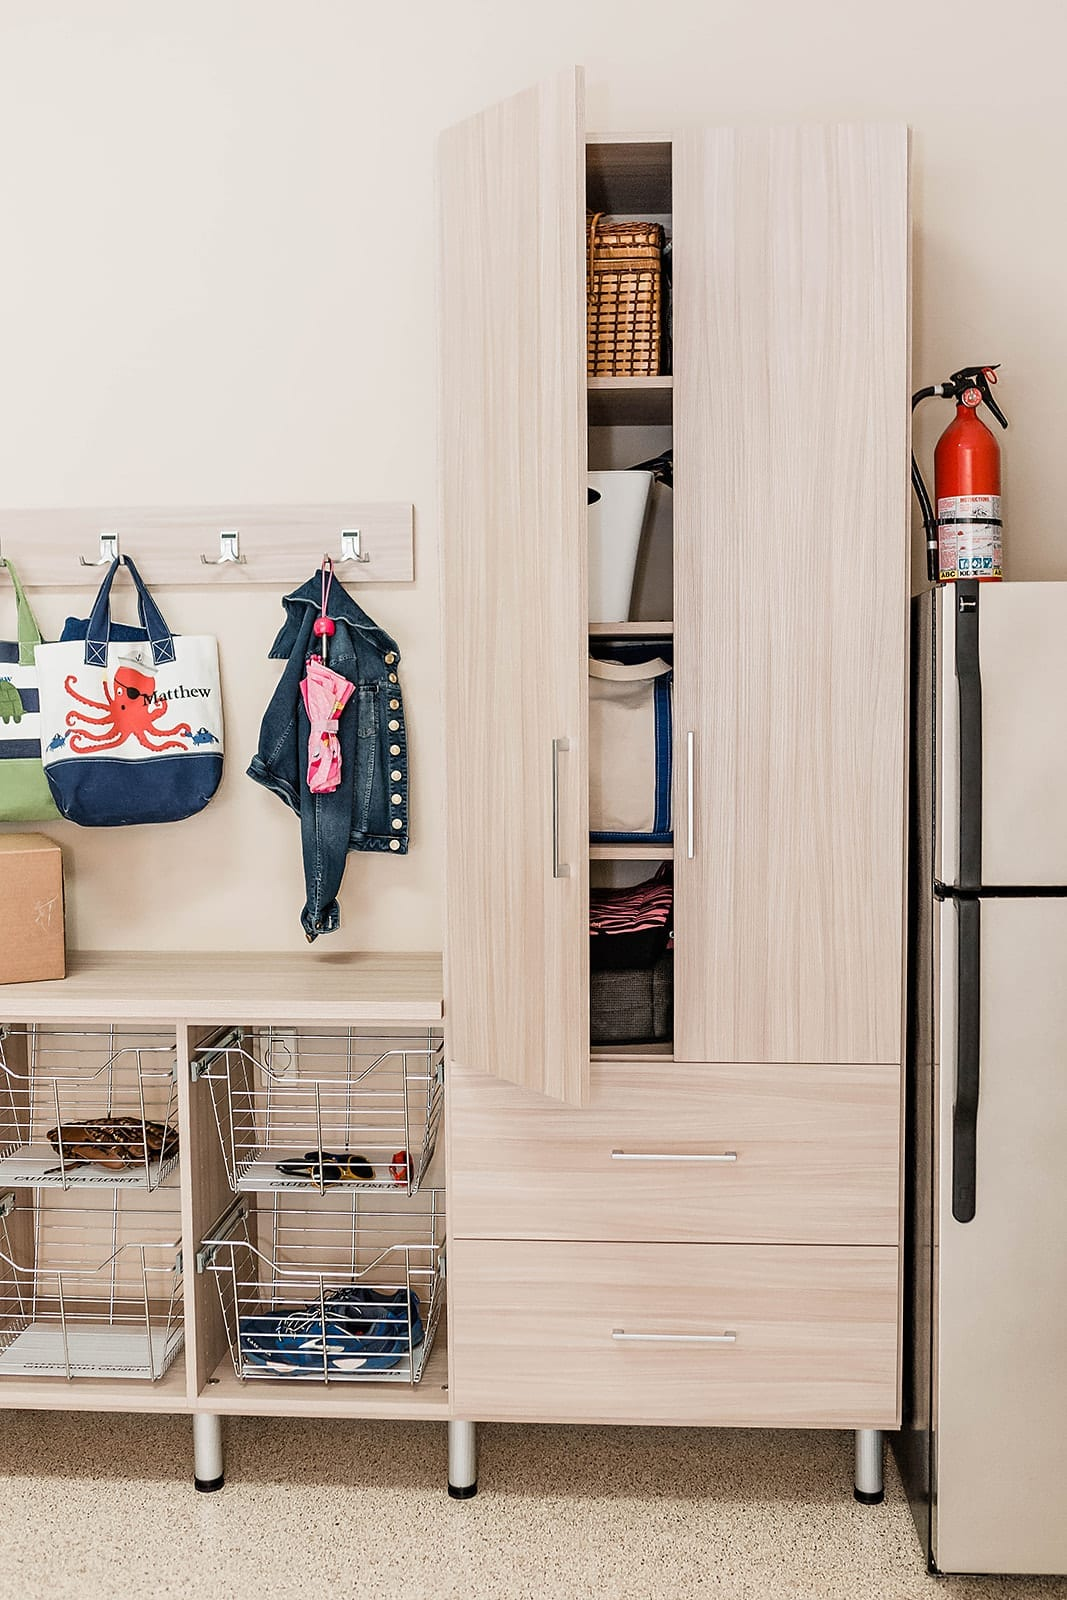 Cleaning and Organizing your Garage - how we changed our garage into a functioning room of the house. See how we store the junk so we can find what we need when we need it!